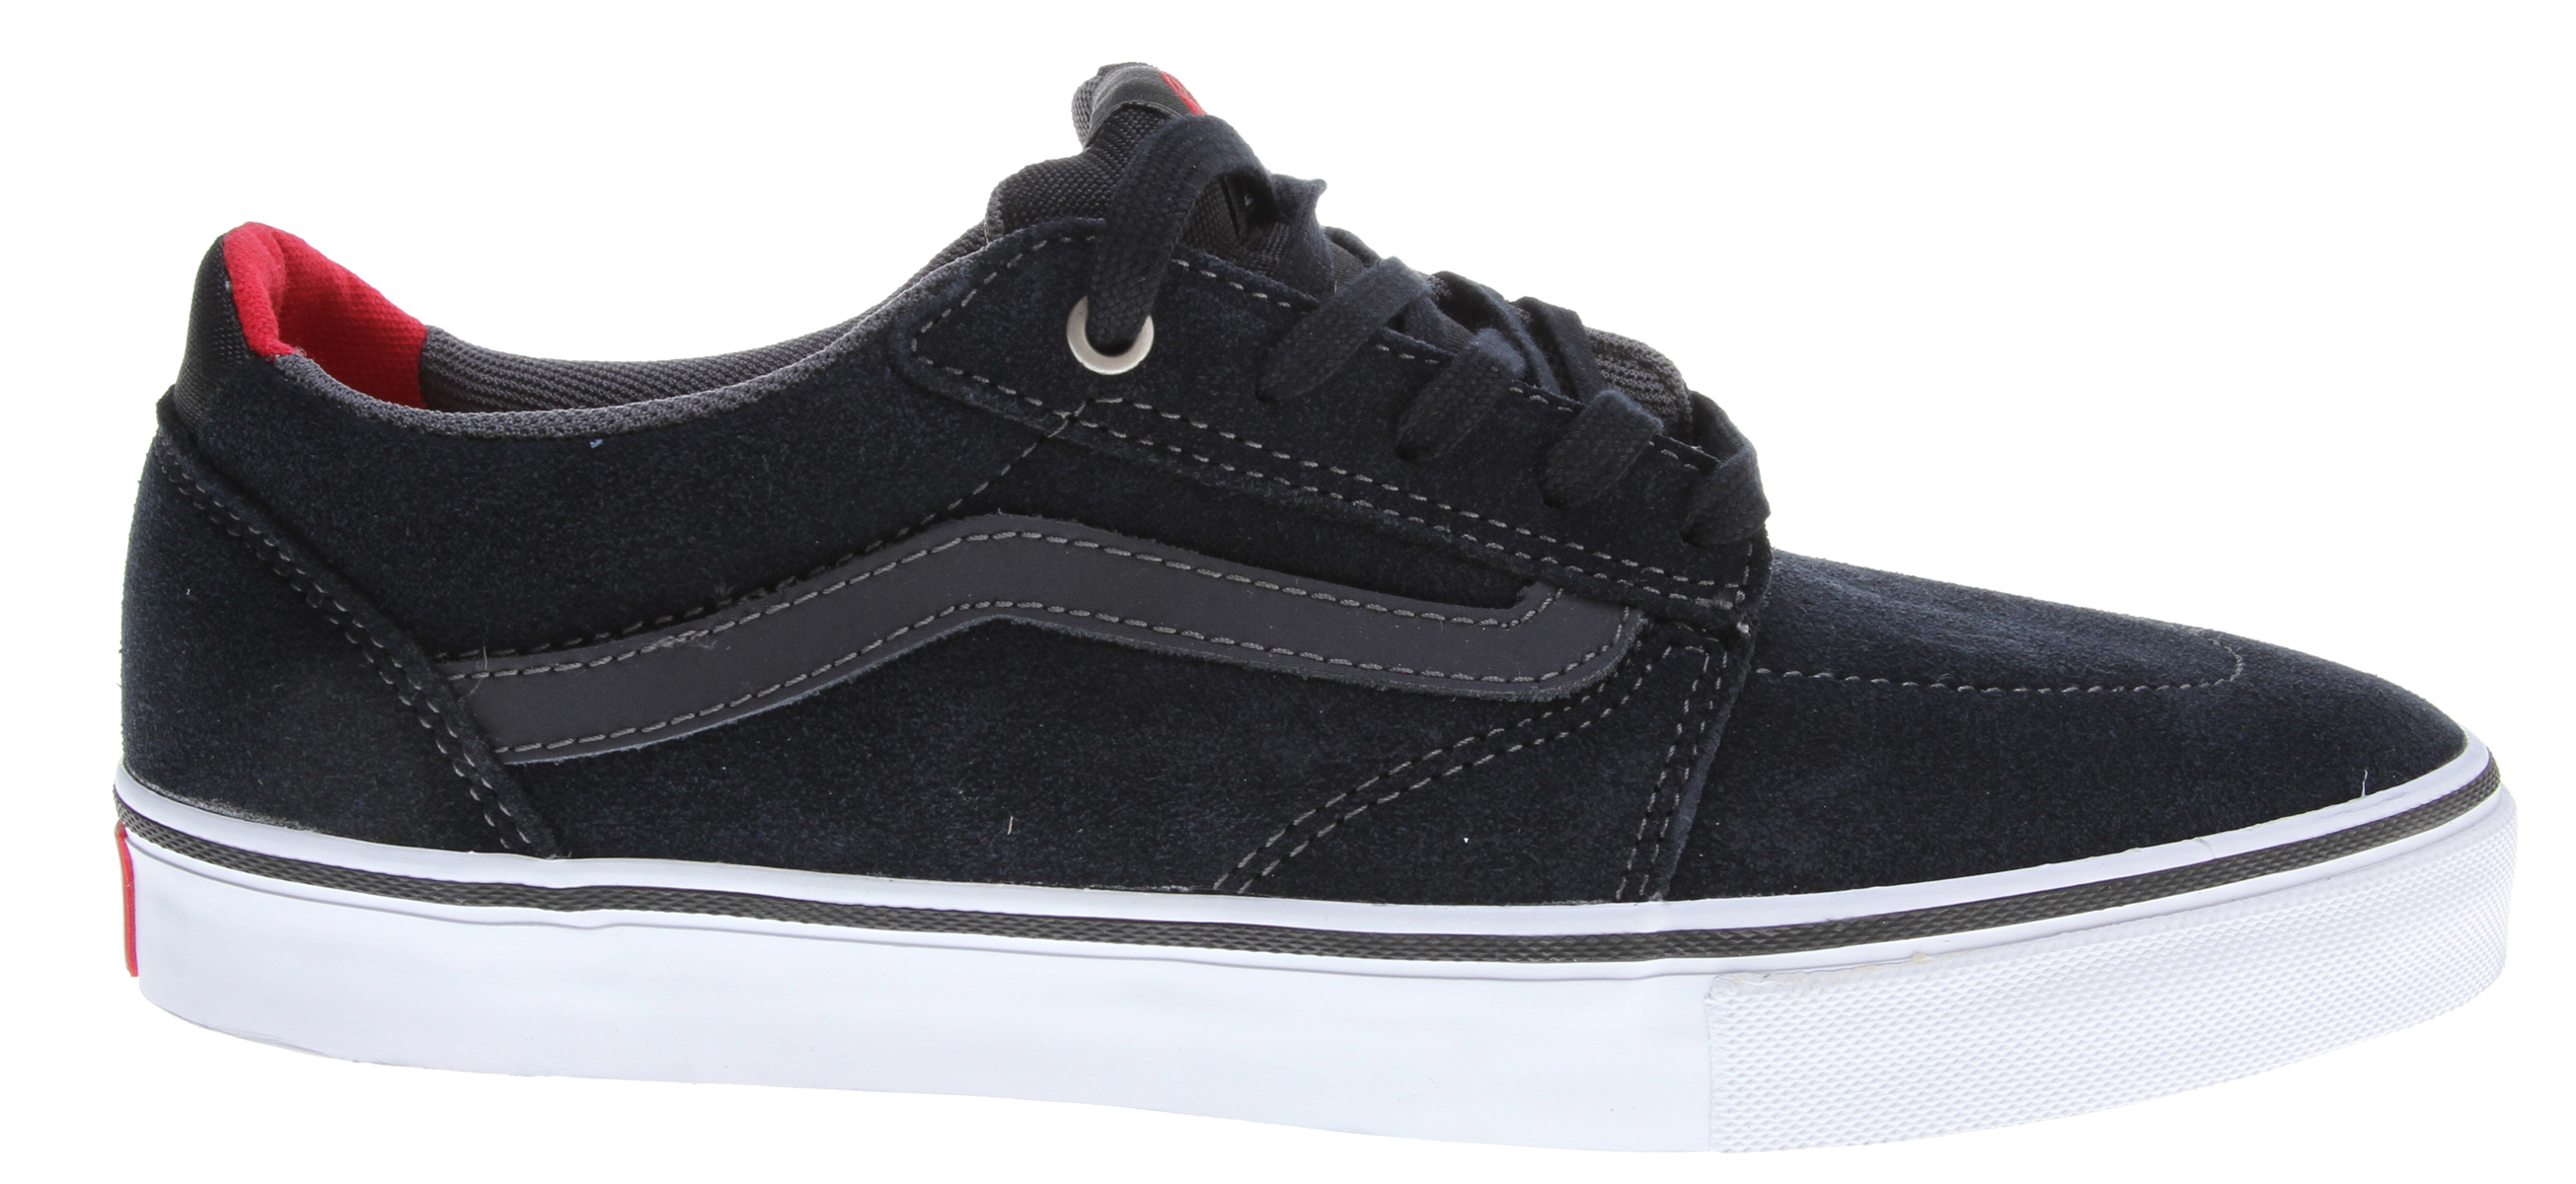 Skateboard Key Features of the Vans Lindero Skate Shoes: PRO VULC Construction CO-MOLDED PU Cushioning Vans ORIGINAL WAFFLE Outsole - $45.95